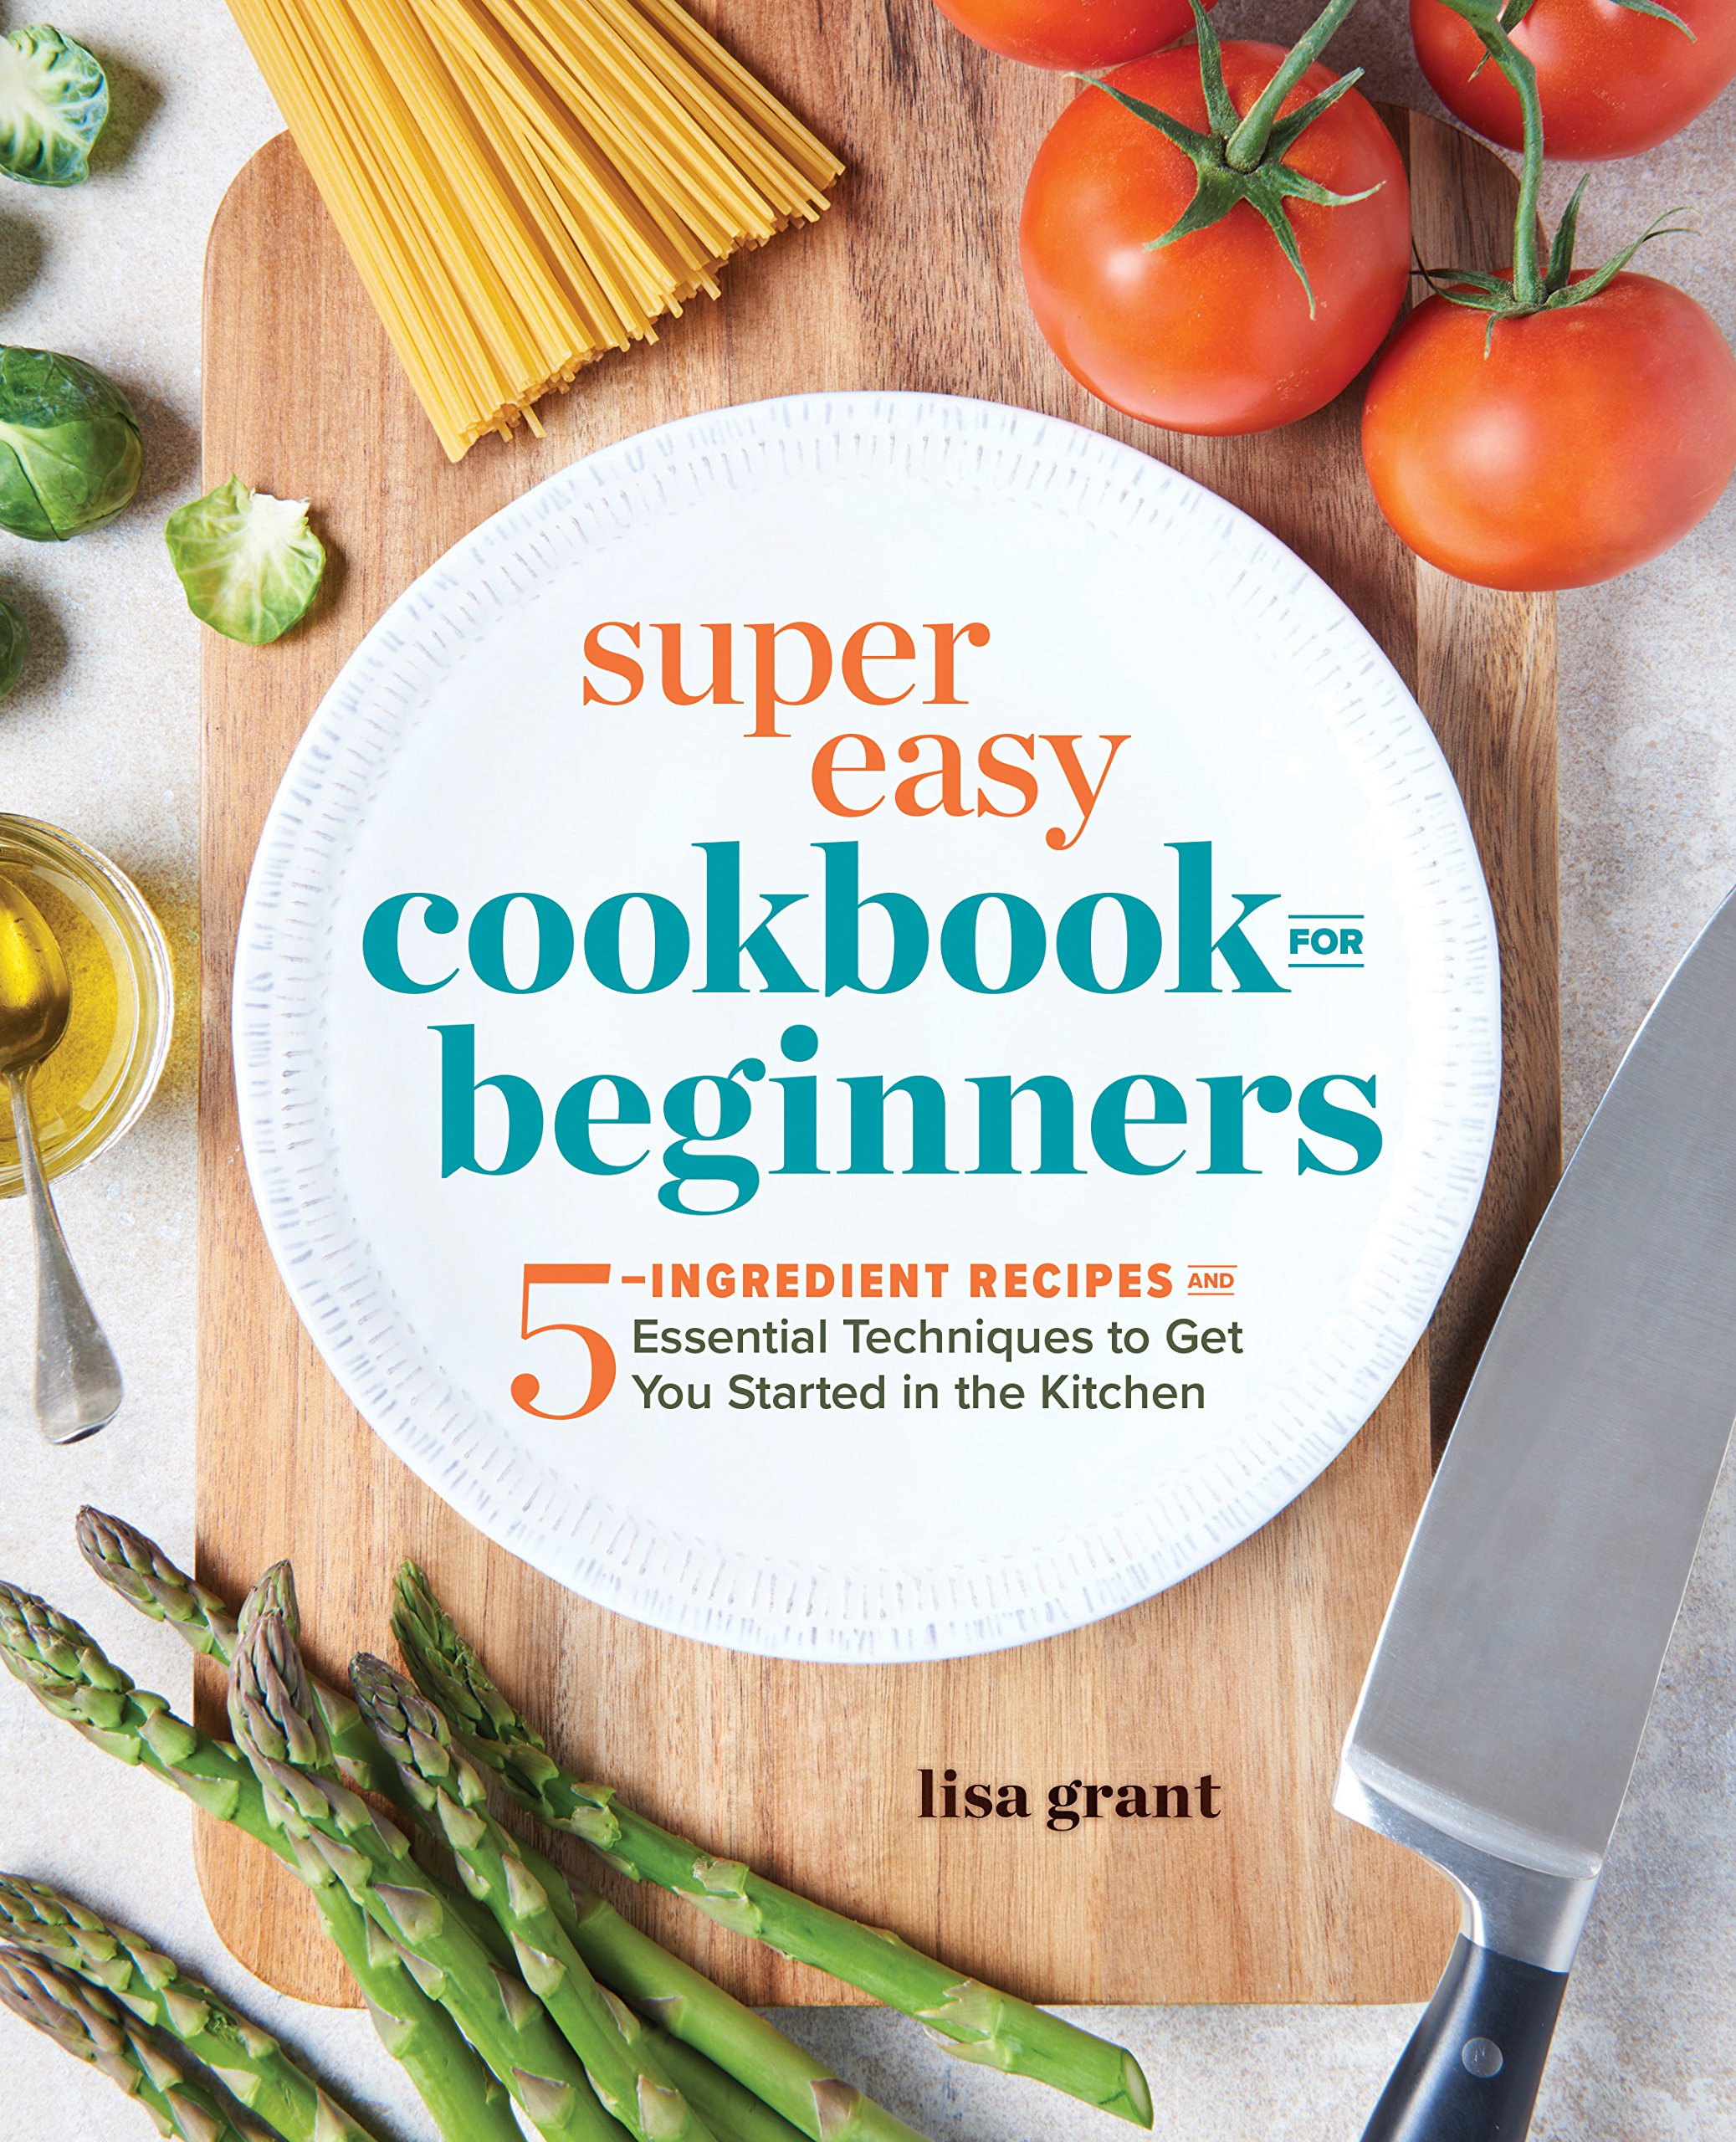 Super Easy Cookbook For Beginners 5 Ingredient Recipes And